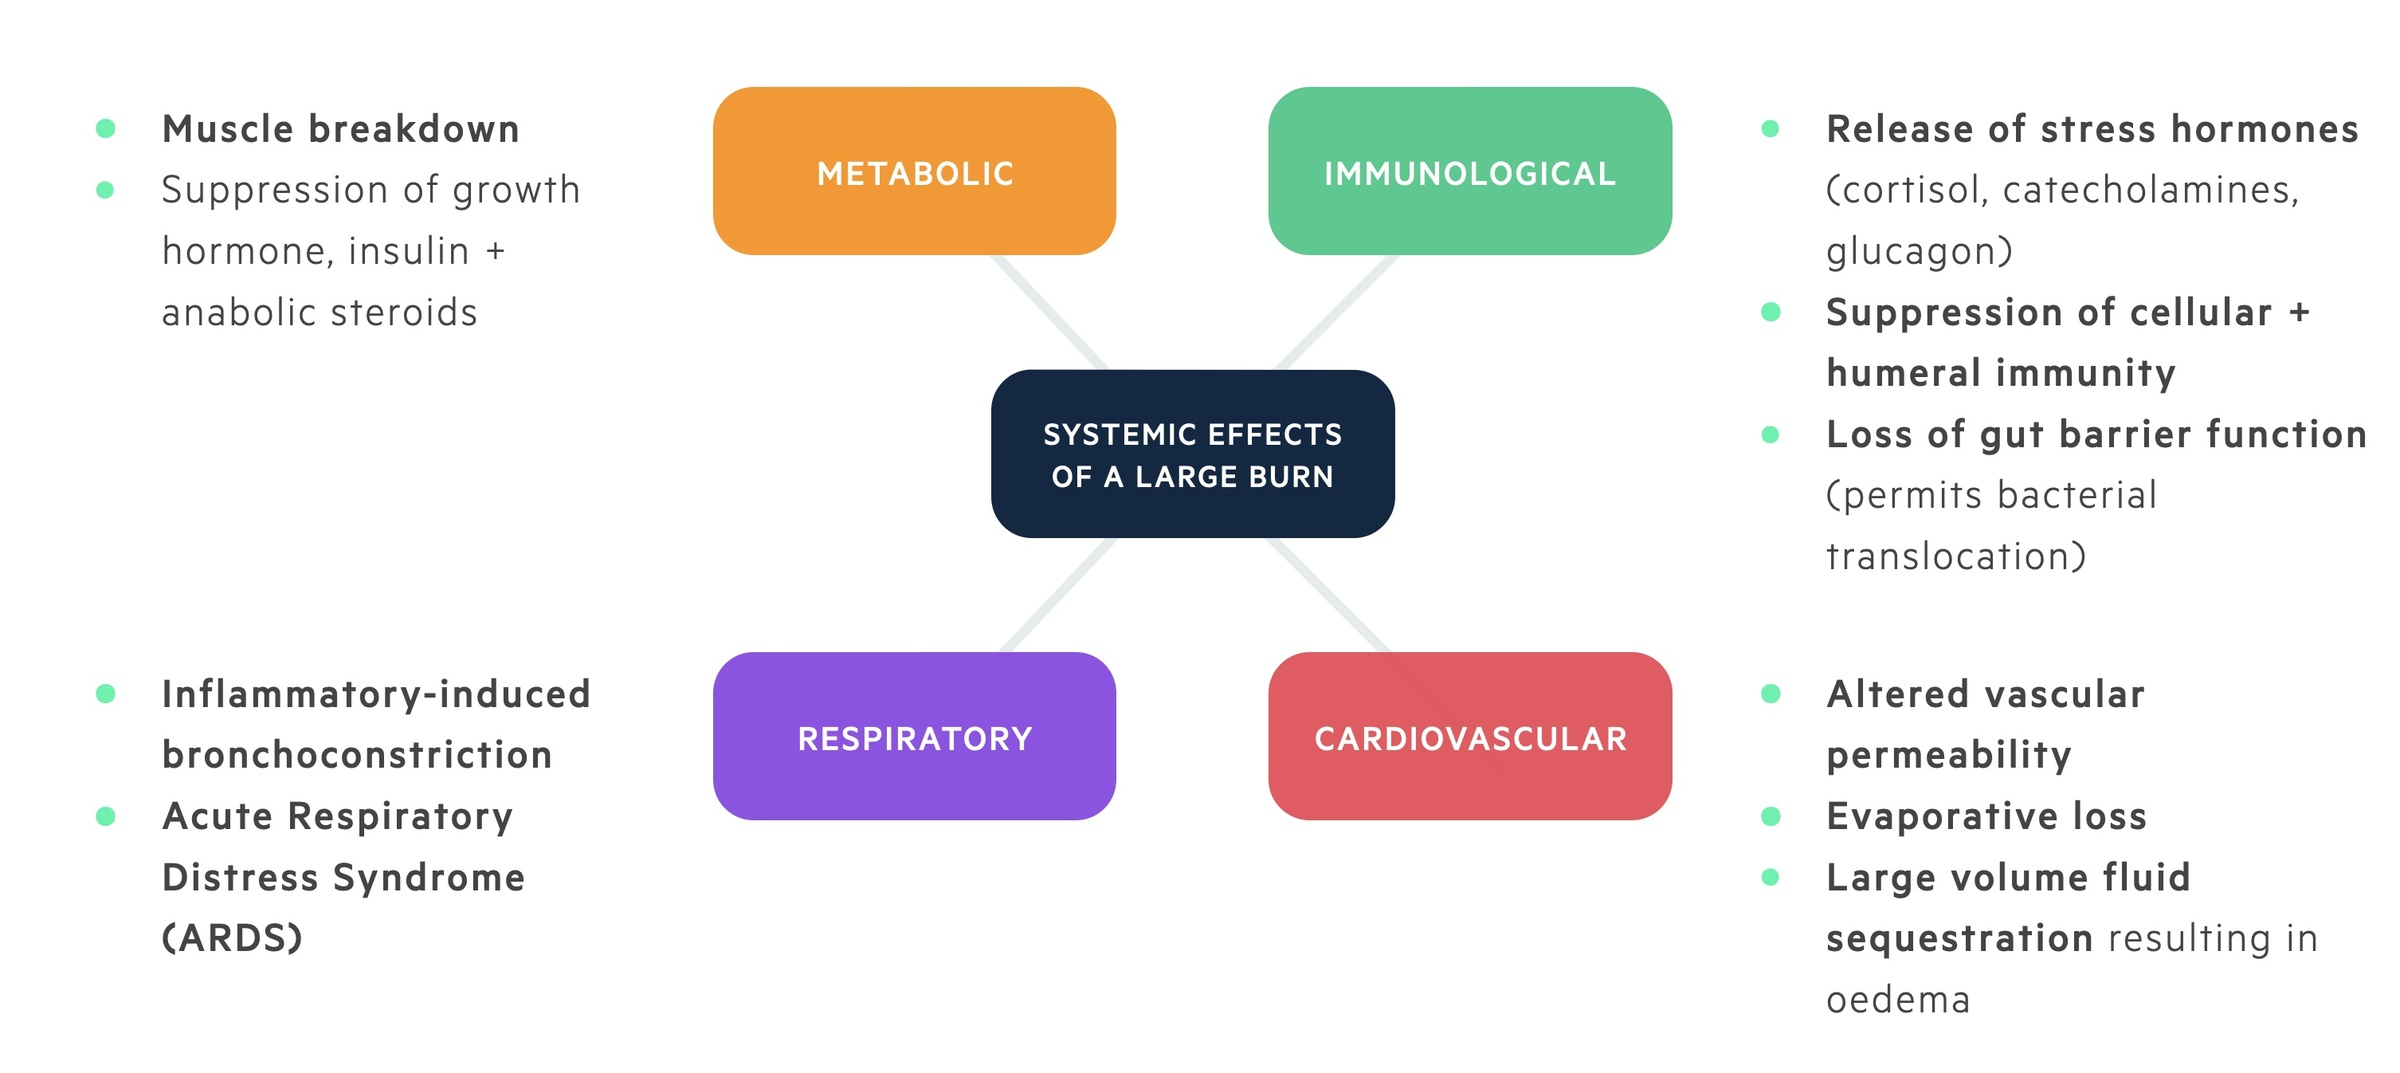 Systemic effects of a large burn